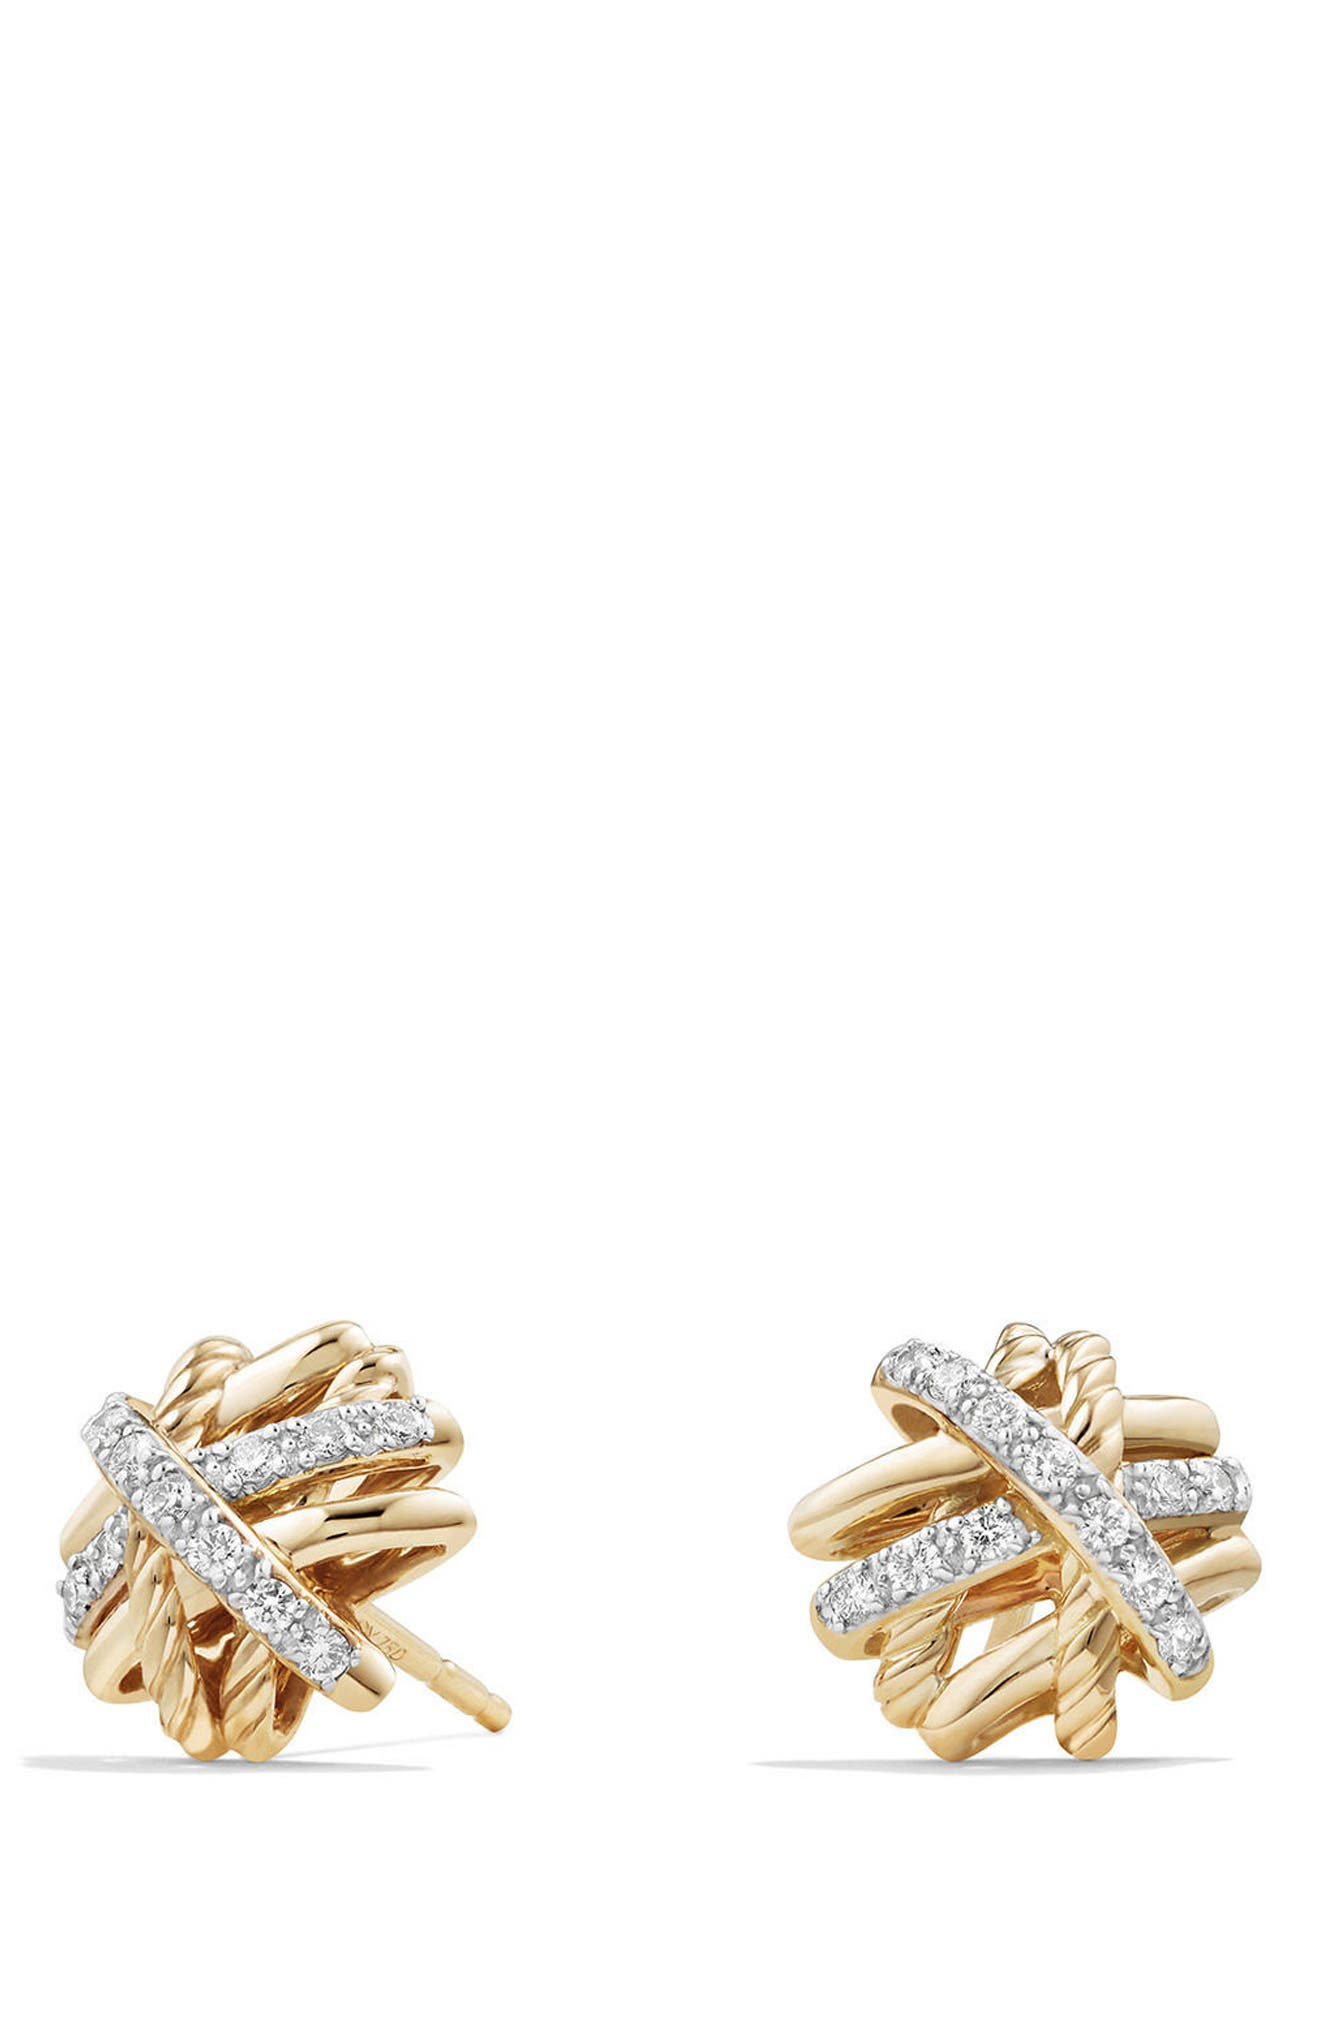 Crossover Stud Earrings with Diamonds in 18k Gold,                             Main thumbnail 1, color,                             YELLOW GOLD/ DIAMOND